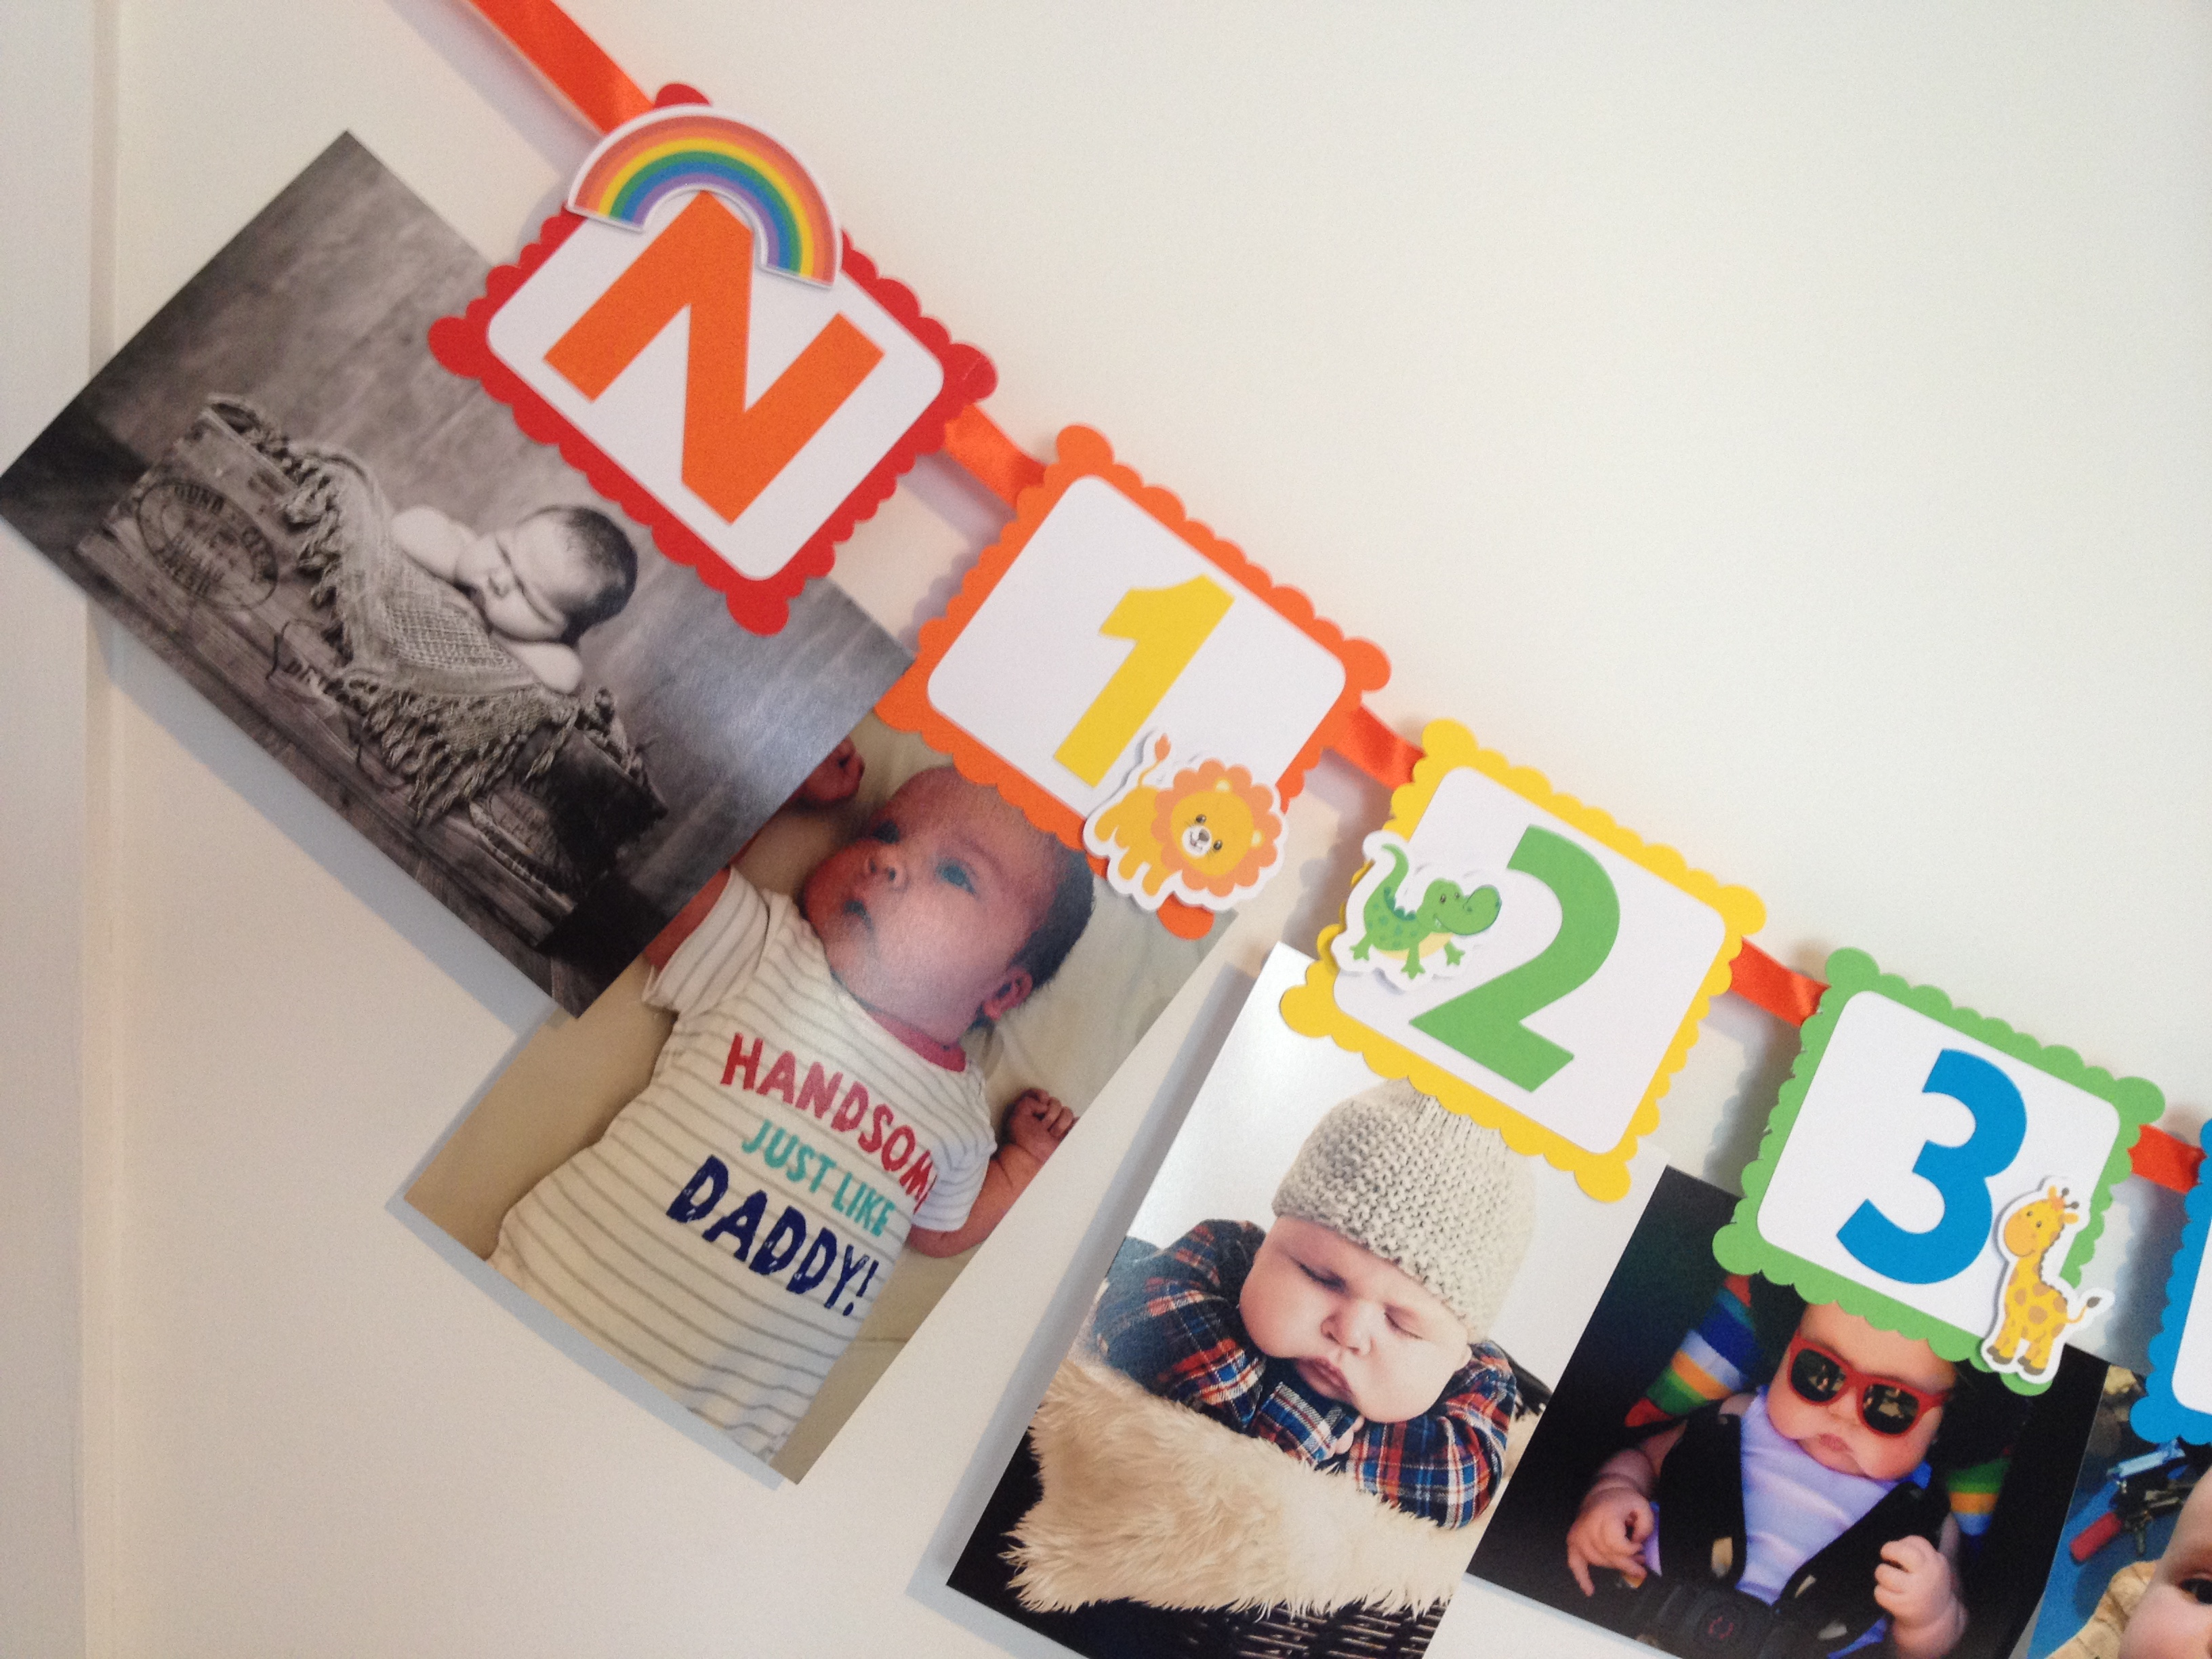 Noahs Ark yearly photo banner for birthday